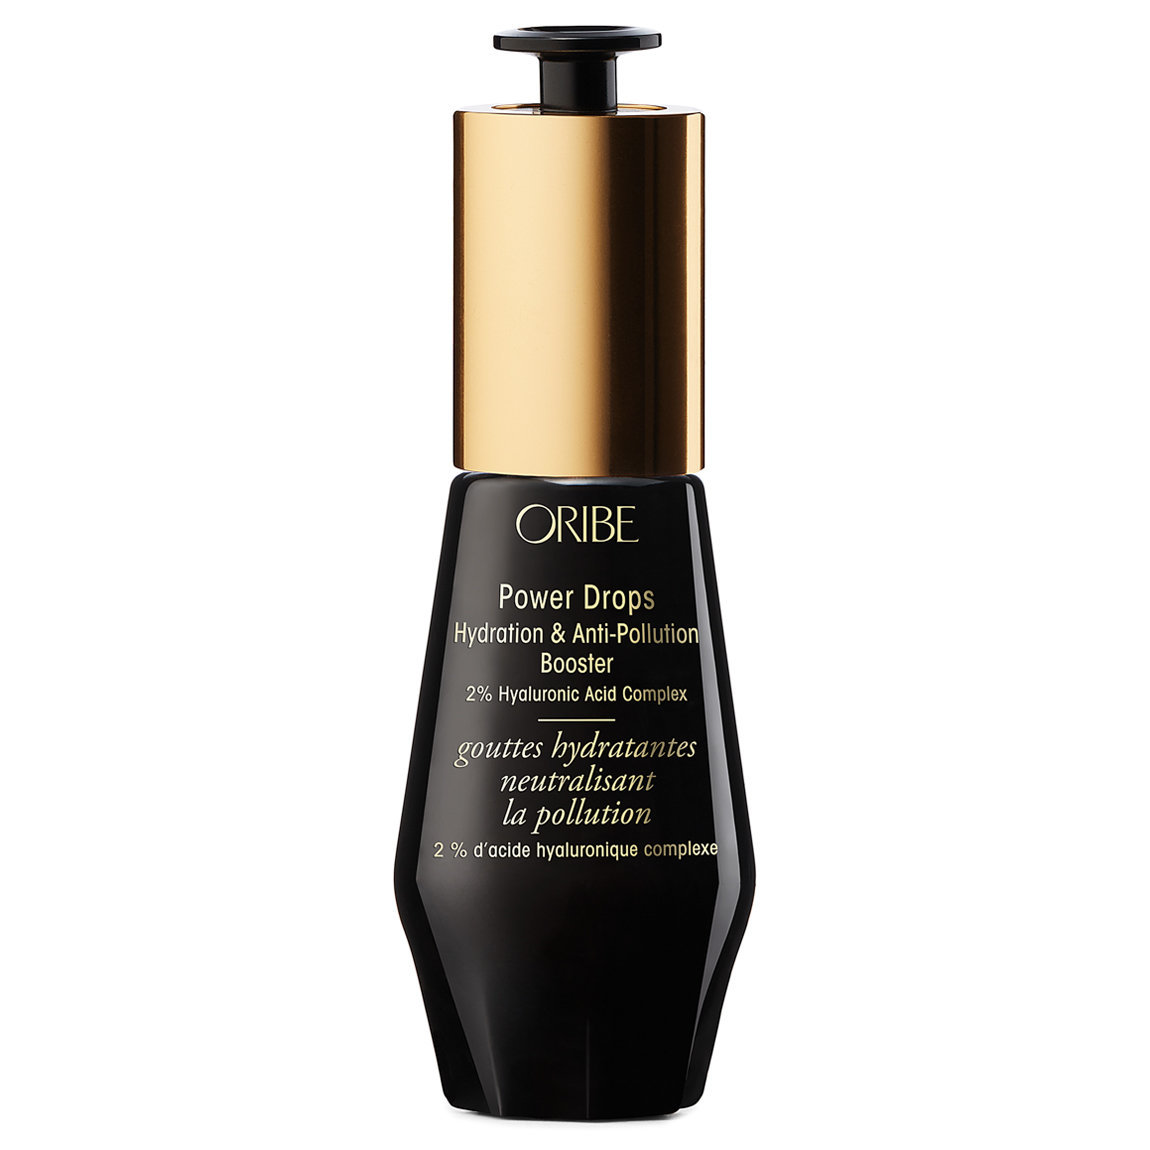 Oribe Power Drops Hydration & Anti-Pollution Booster product swatch.